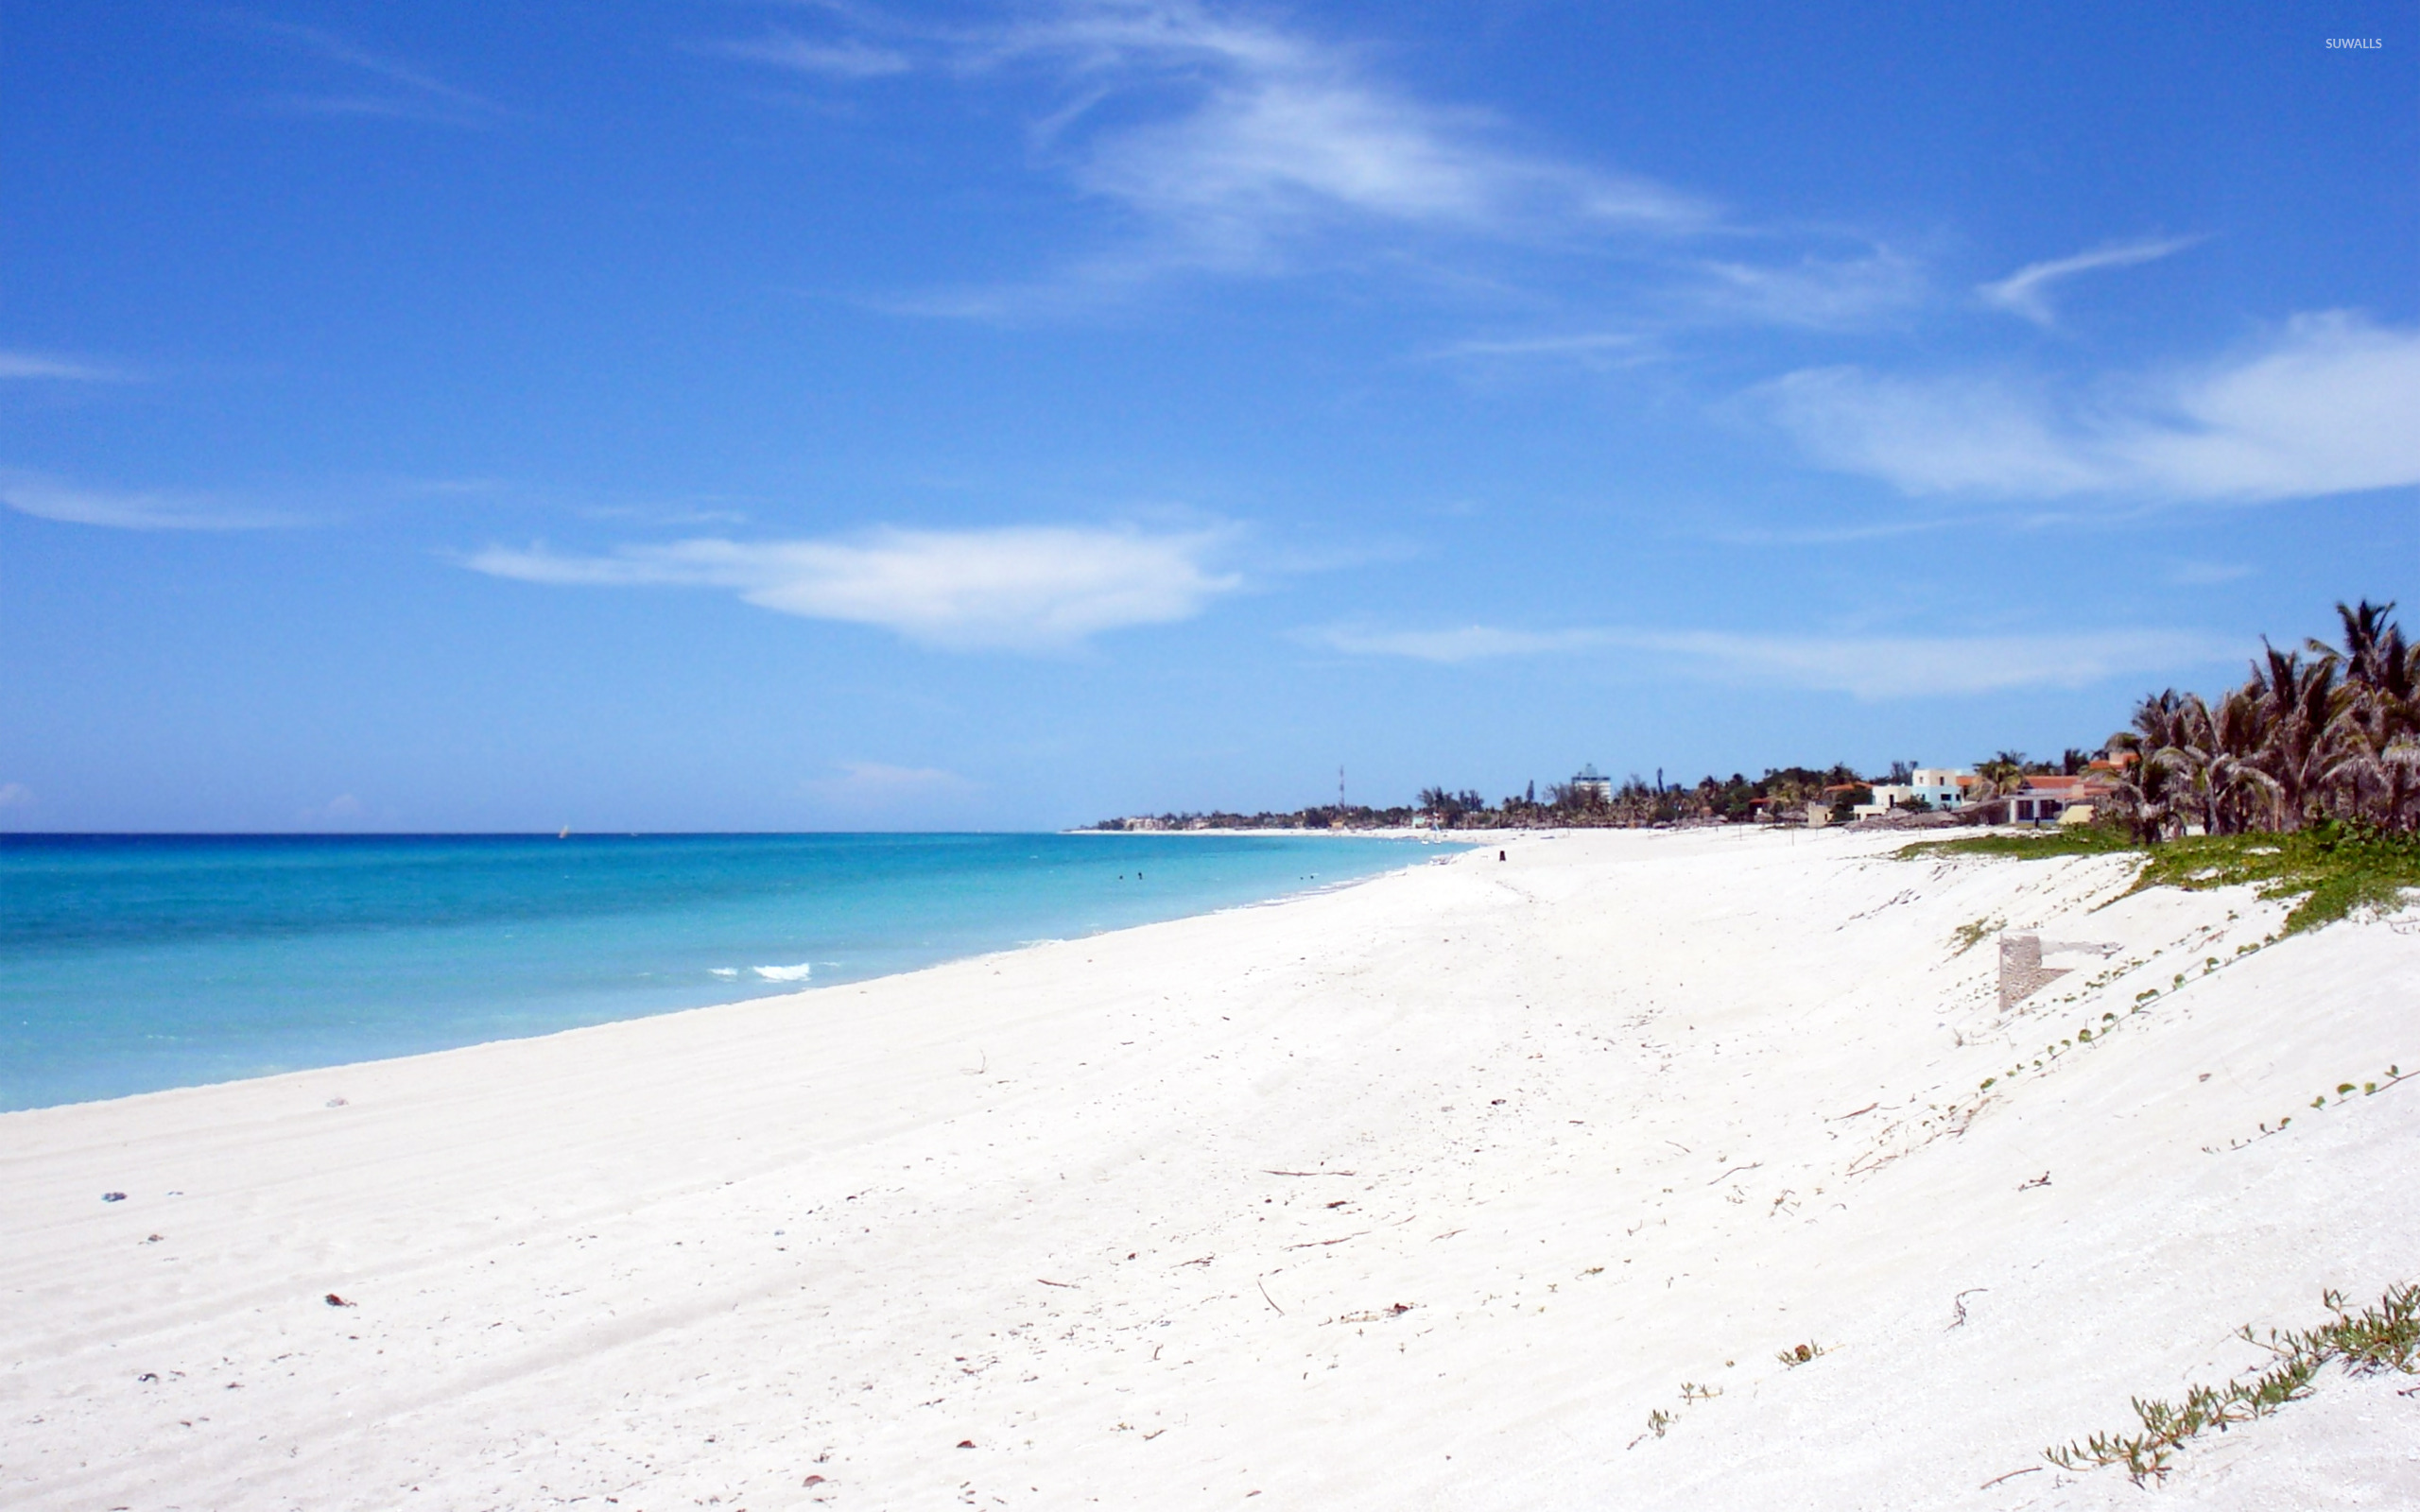 Varadero Beach 3 Wallpaper